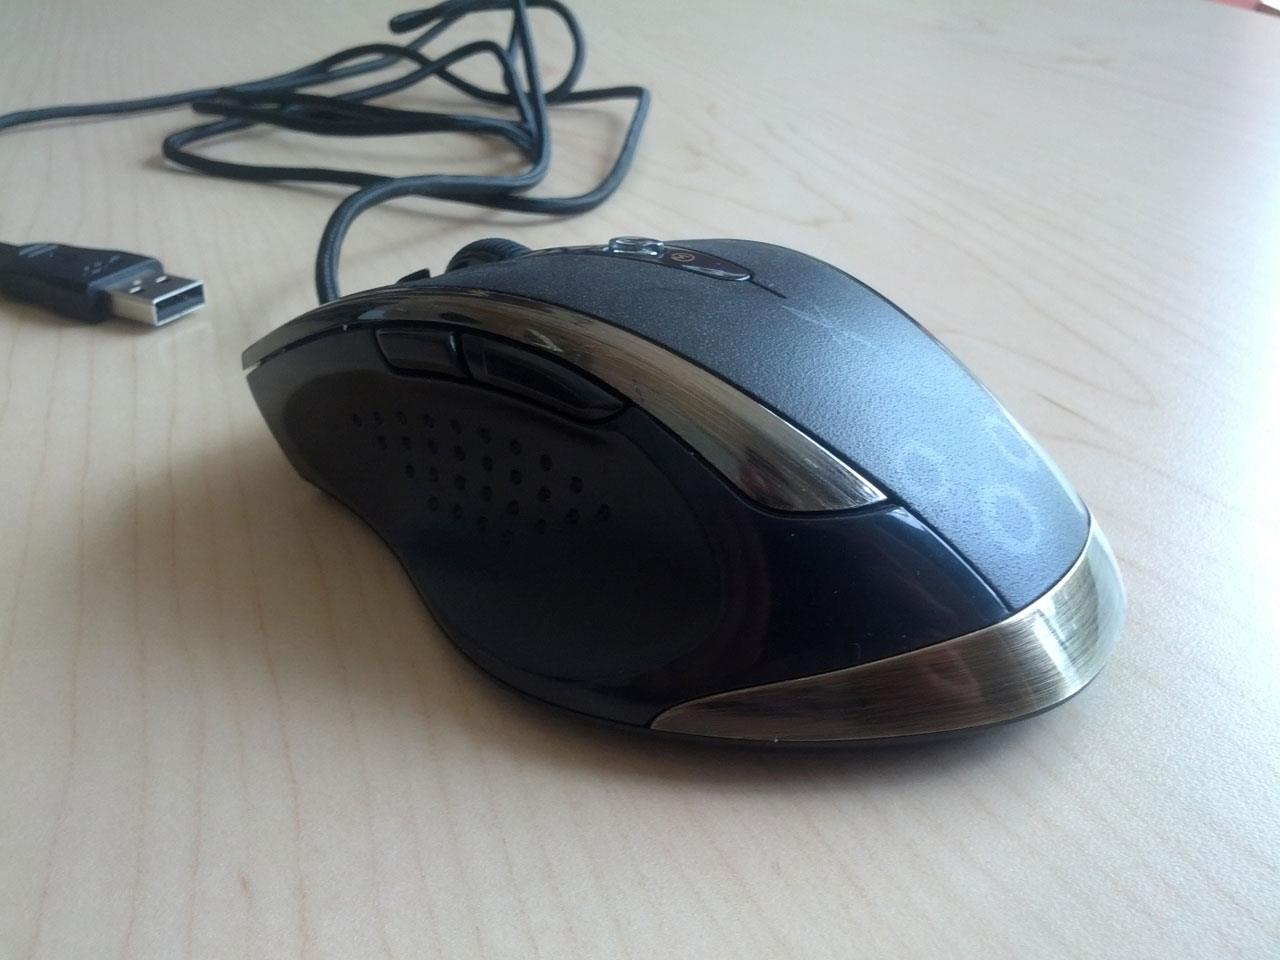 A4Tech X7 F3 Gaming Mouse